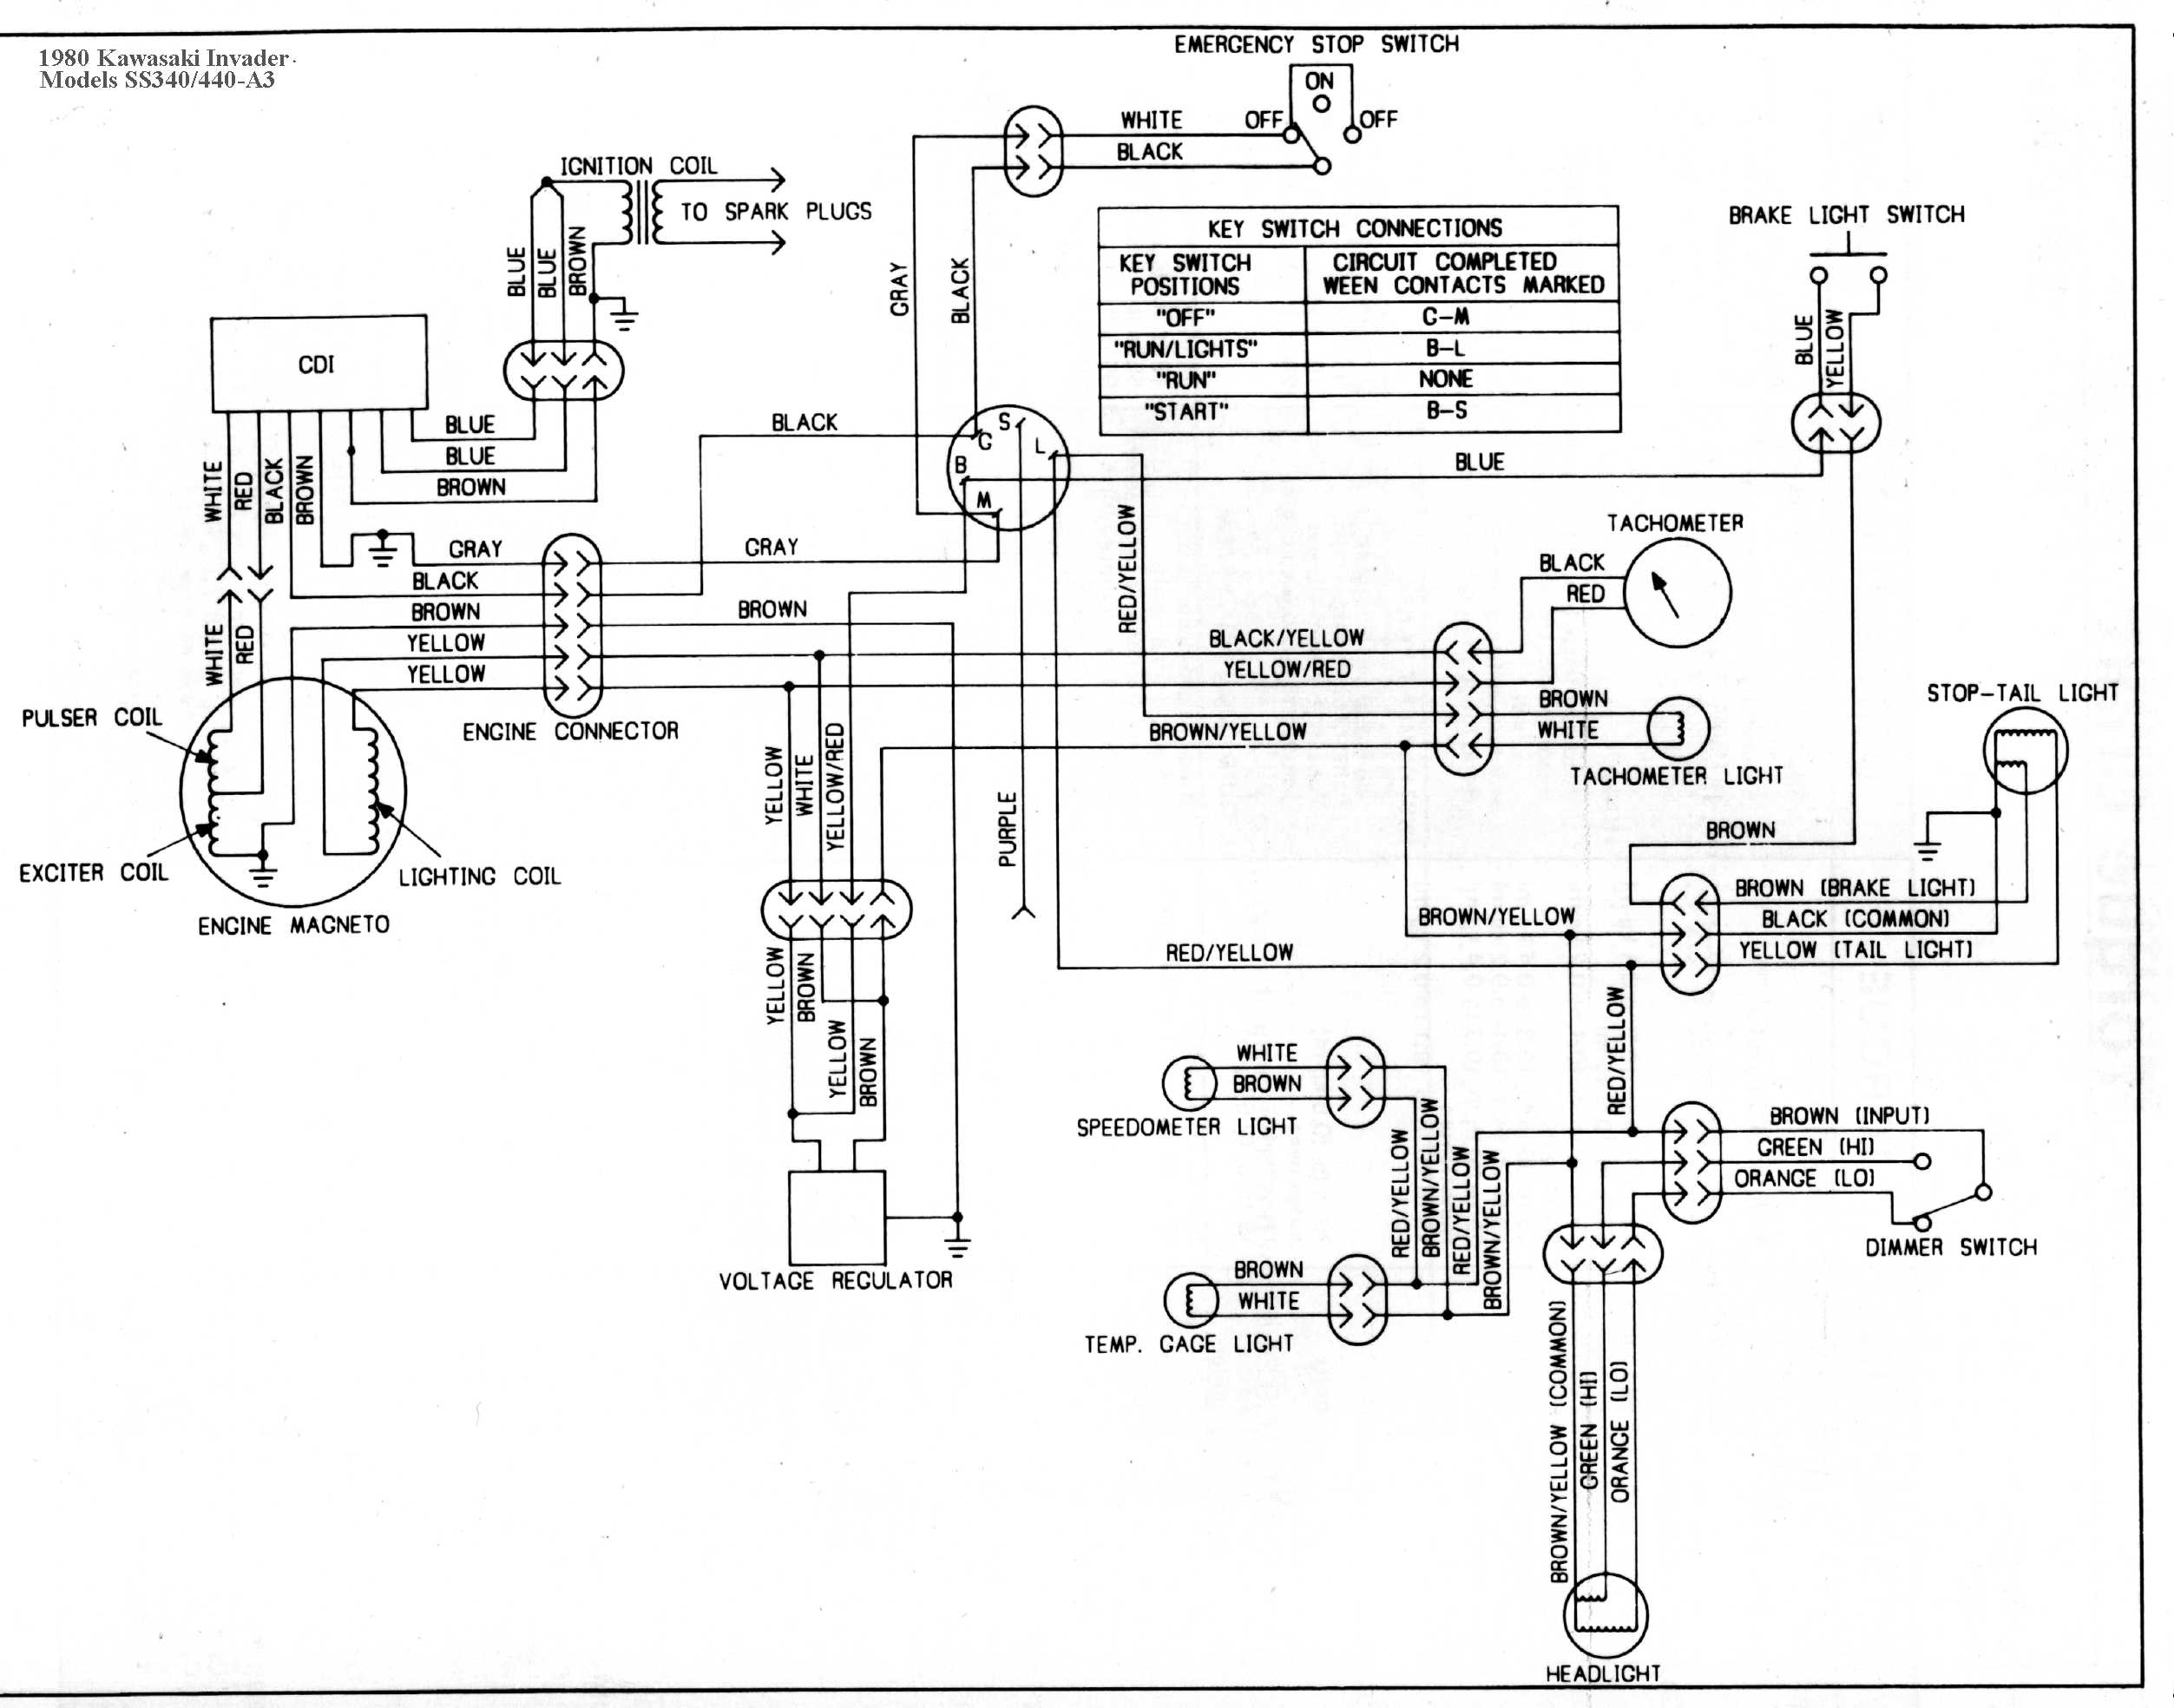 ss340a3 kawasaki invader snowmobile wiring diagrams 1980 kawasaki 440 ltd wiring diagram at bakdesigns.co